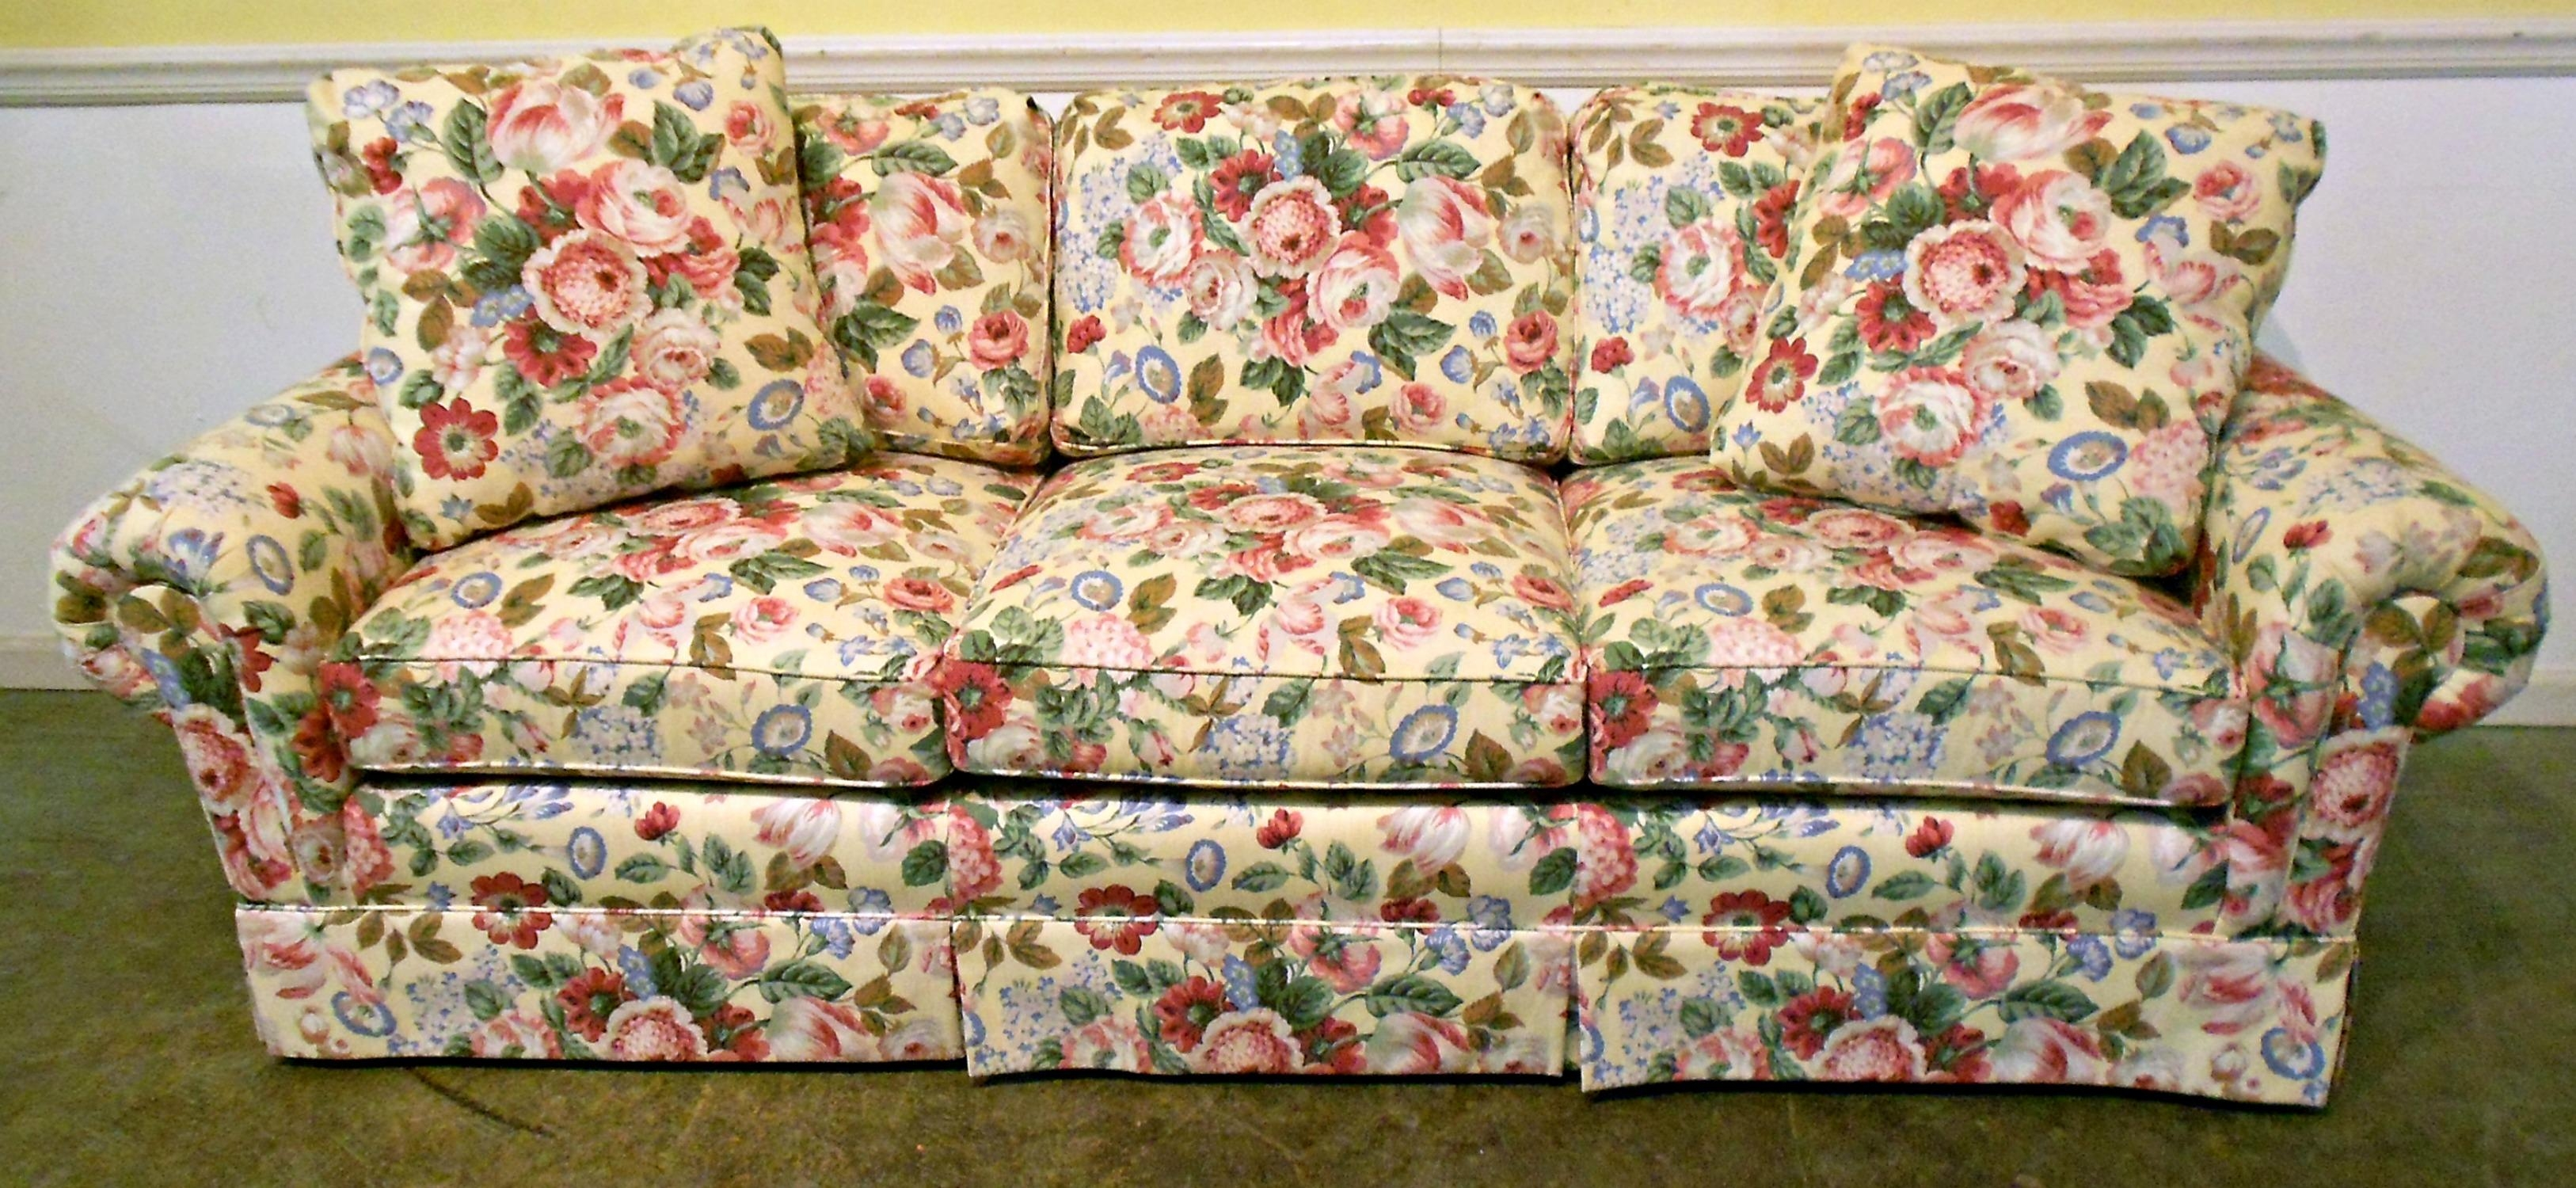 Best Modest Floral Sofas And Chairs #1658 Within Floral Sofas And Chairs (View 14 of 20)